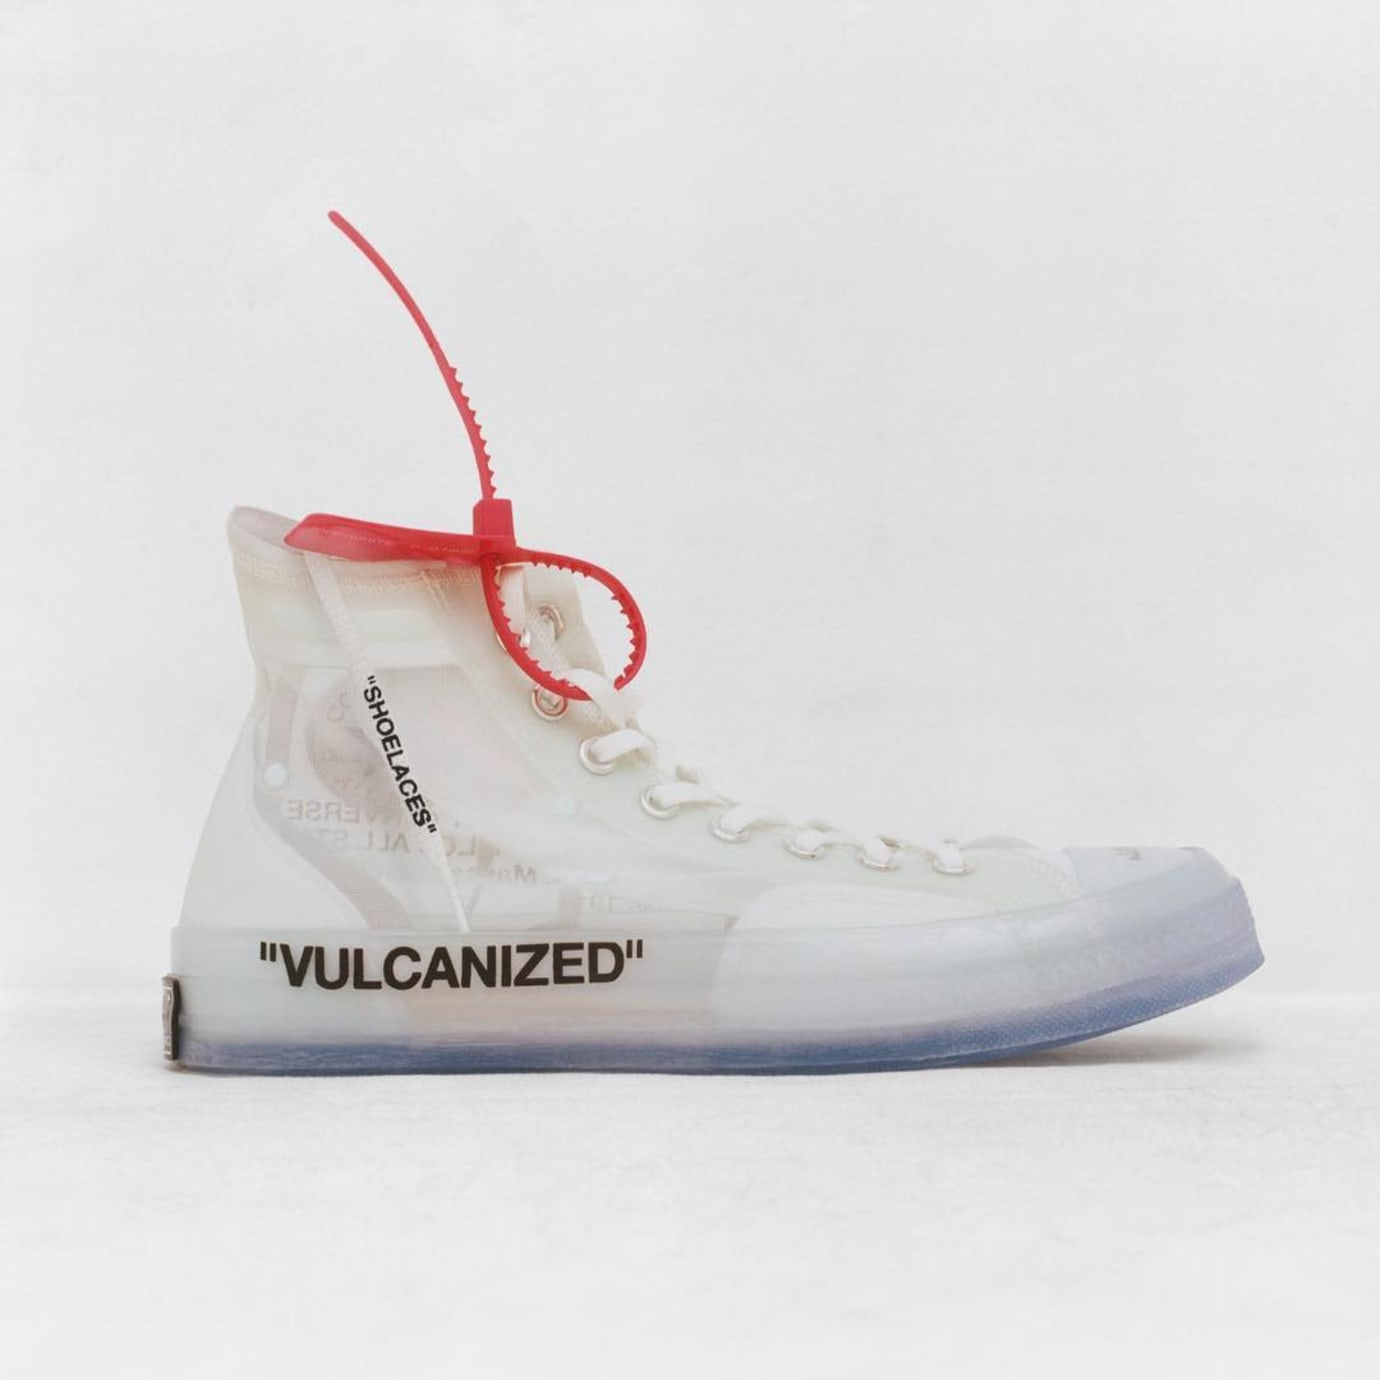 Off-White x Converse Chuck Taylor All Star Medial